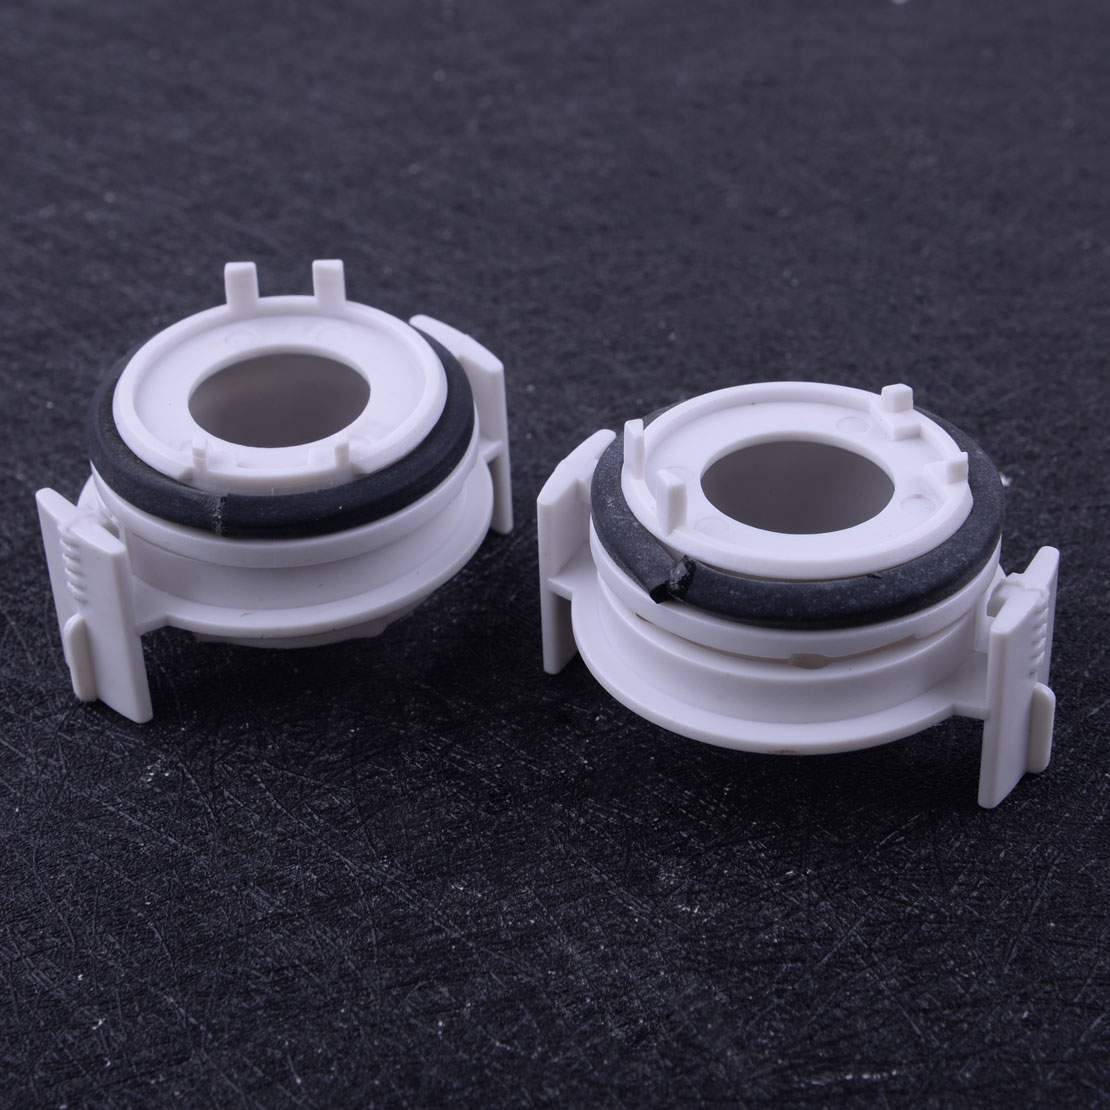 beler 2PCS H7 Headlight HID <font><b>LED</b></font> <font><b>Adapter</b></font> Retainer Holder Fit for <font><b>BMW</b></font> <font><b>E46</b></font> 3 Series 325i 325ci 330i 330ci 1998-2002 2003 2004 2005 image